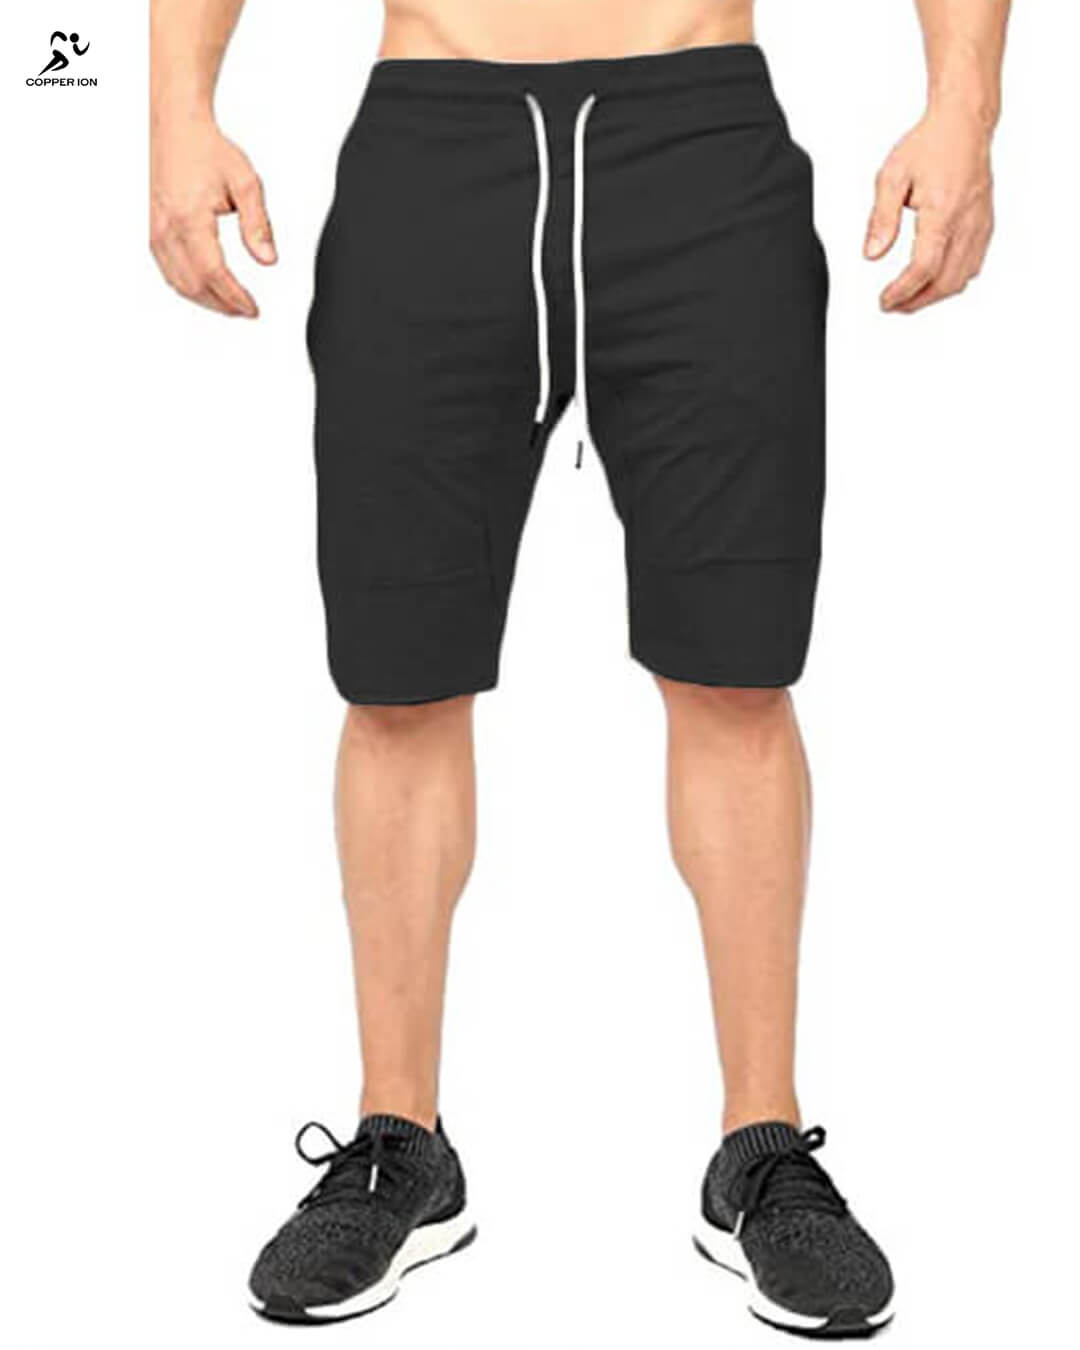 Copper Infused Shorts Mens Black